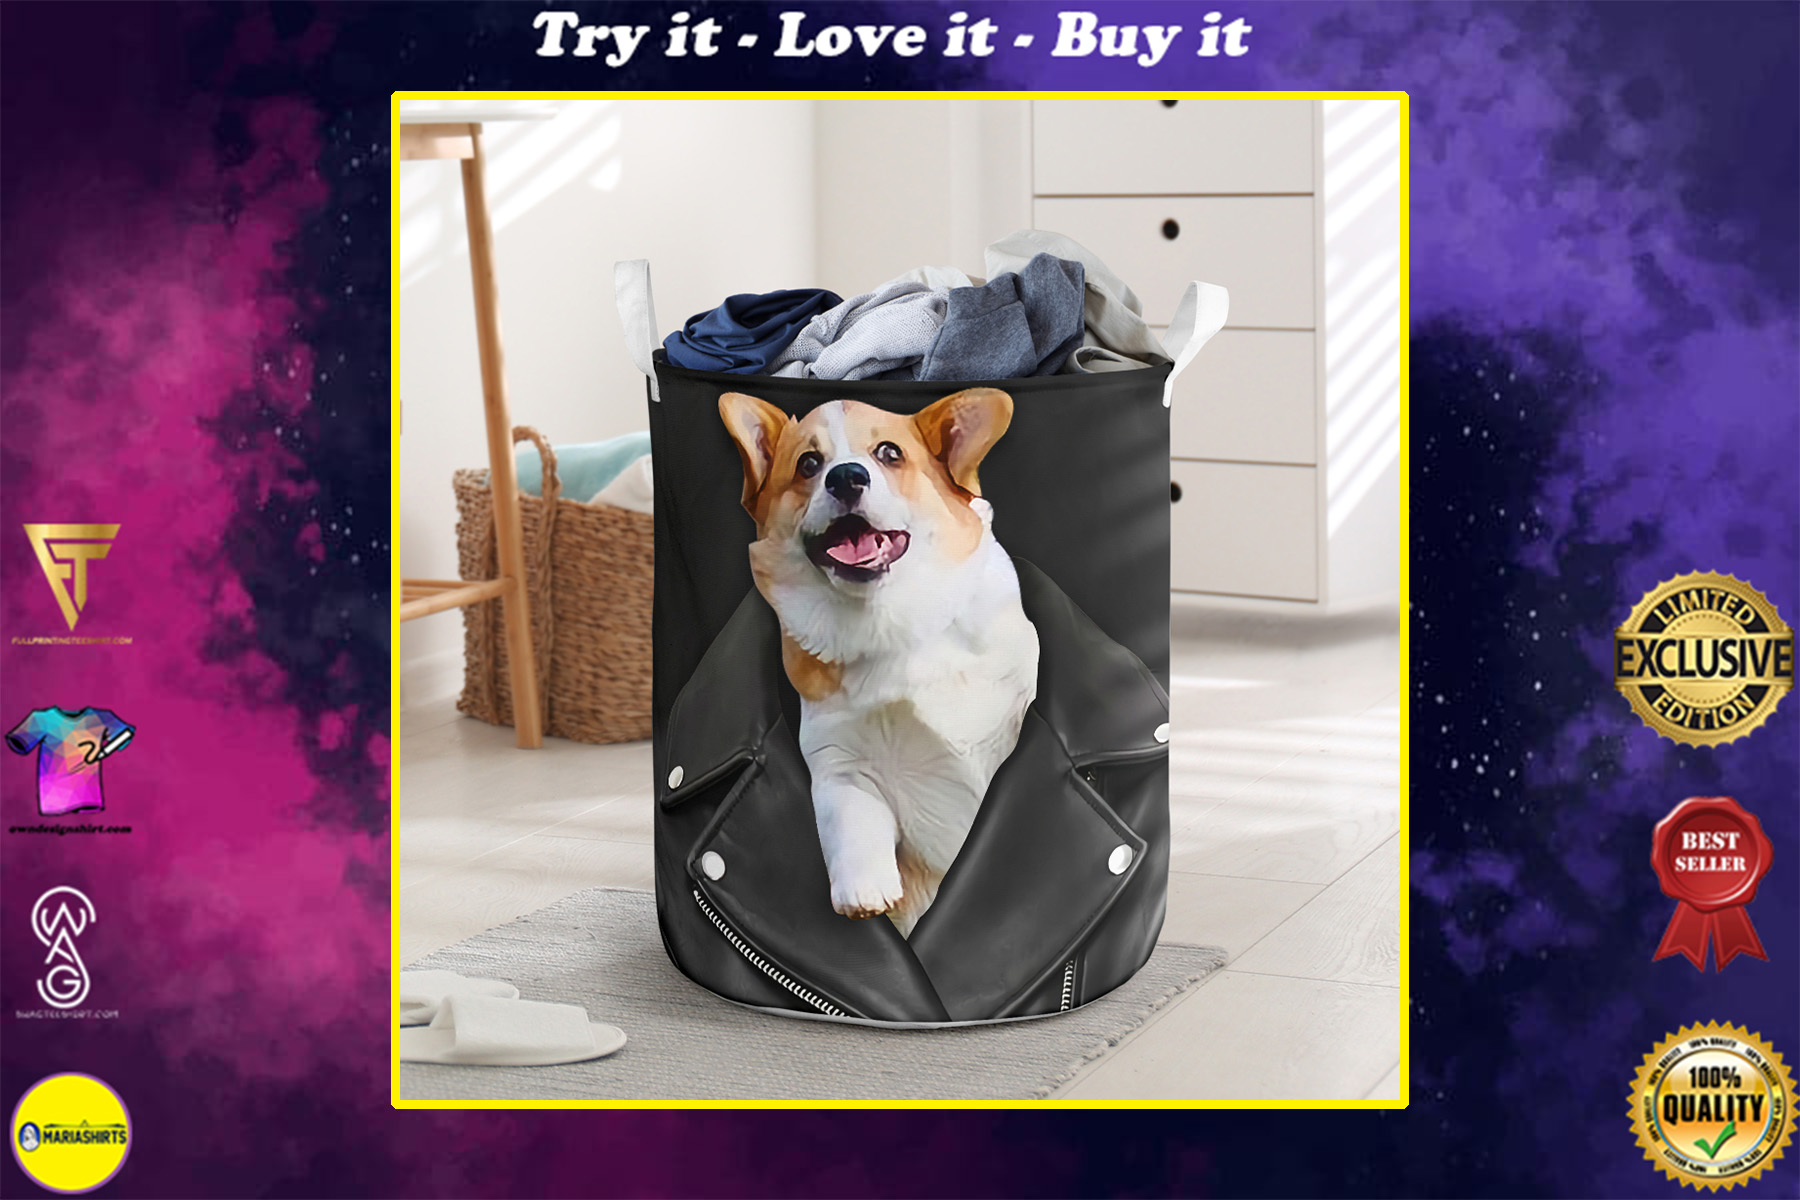 corgi in jacket all over printed laundry basket